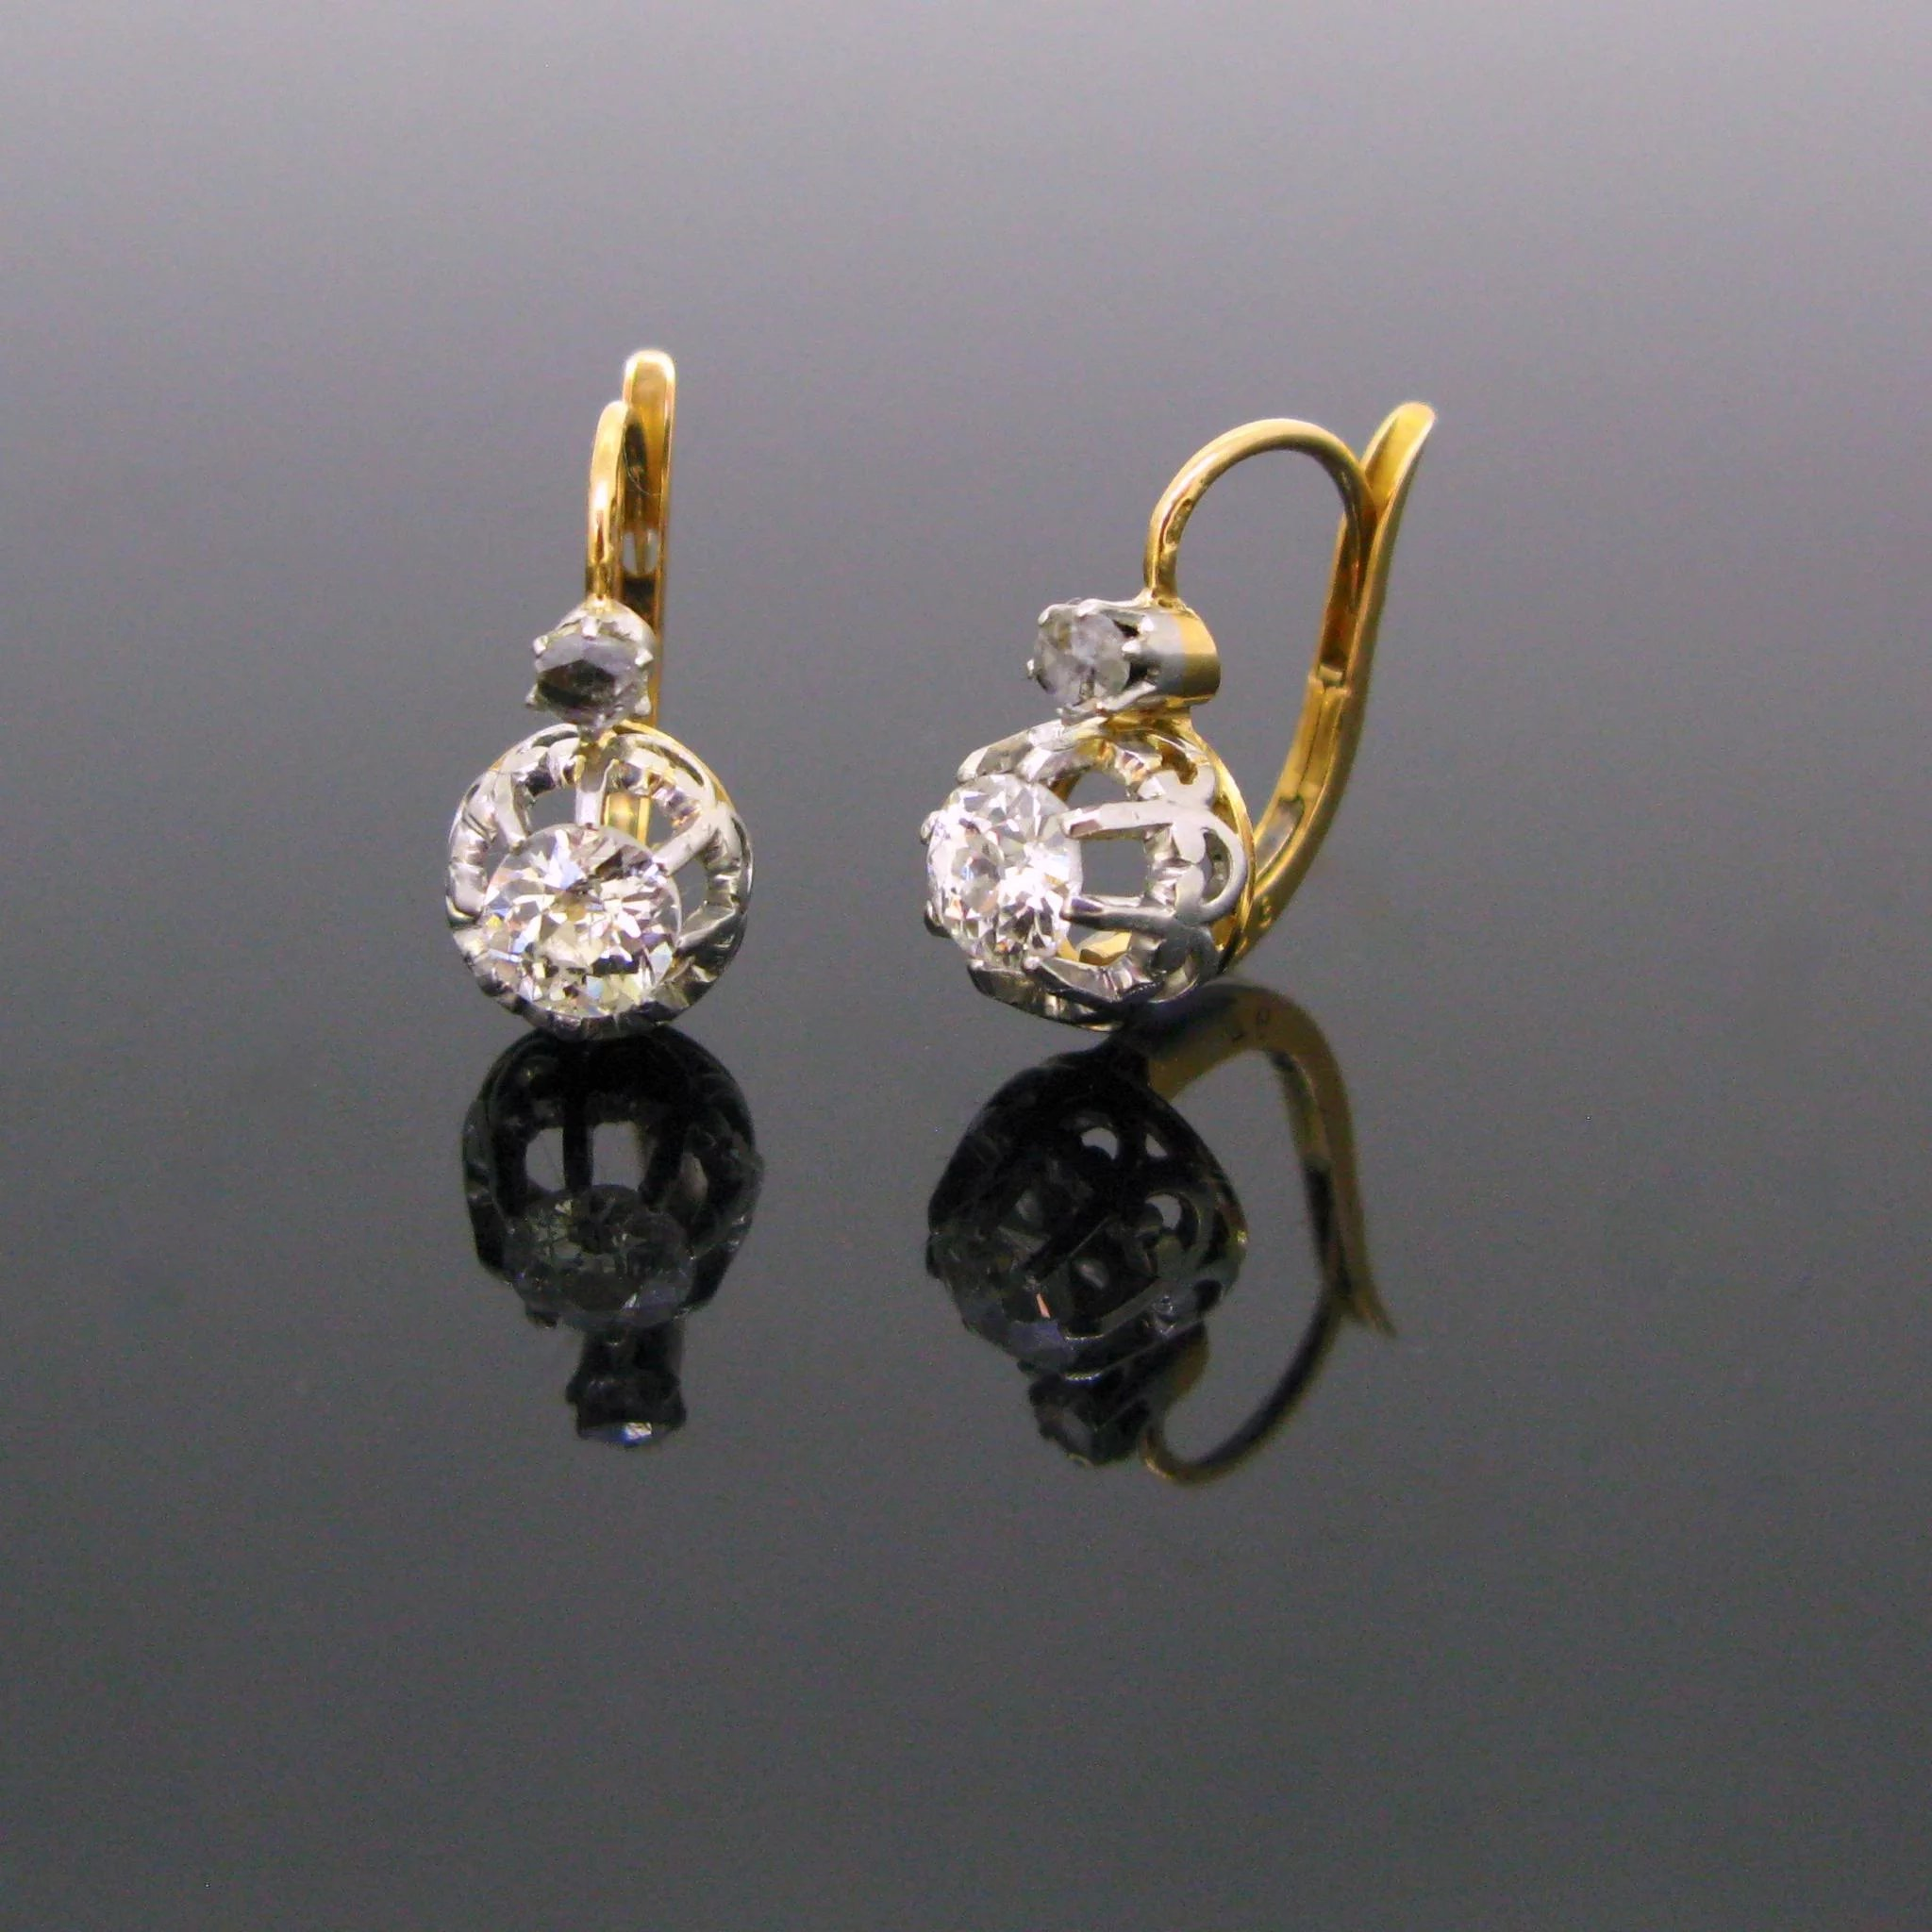 antique earrings stud l round baguette cut diamond vintage